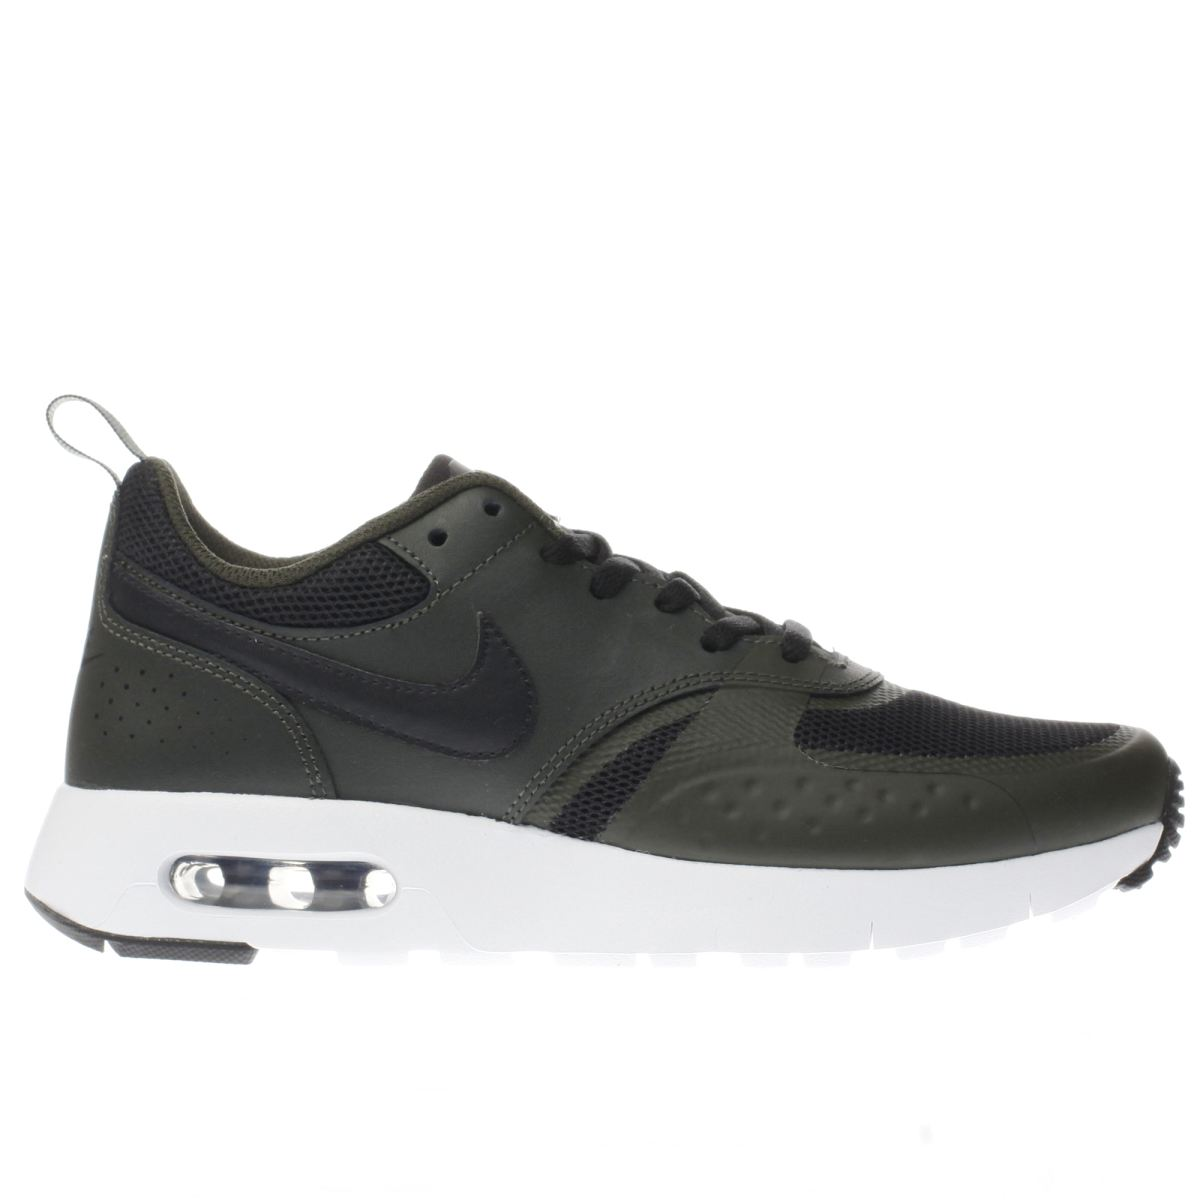 nike khaki air max vision Boys Youth Trainers